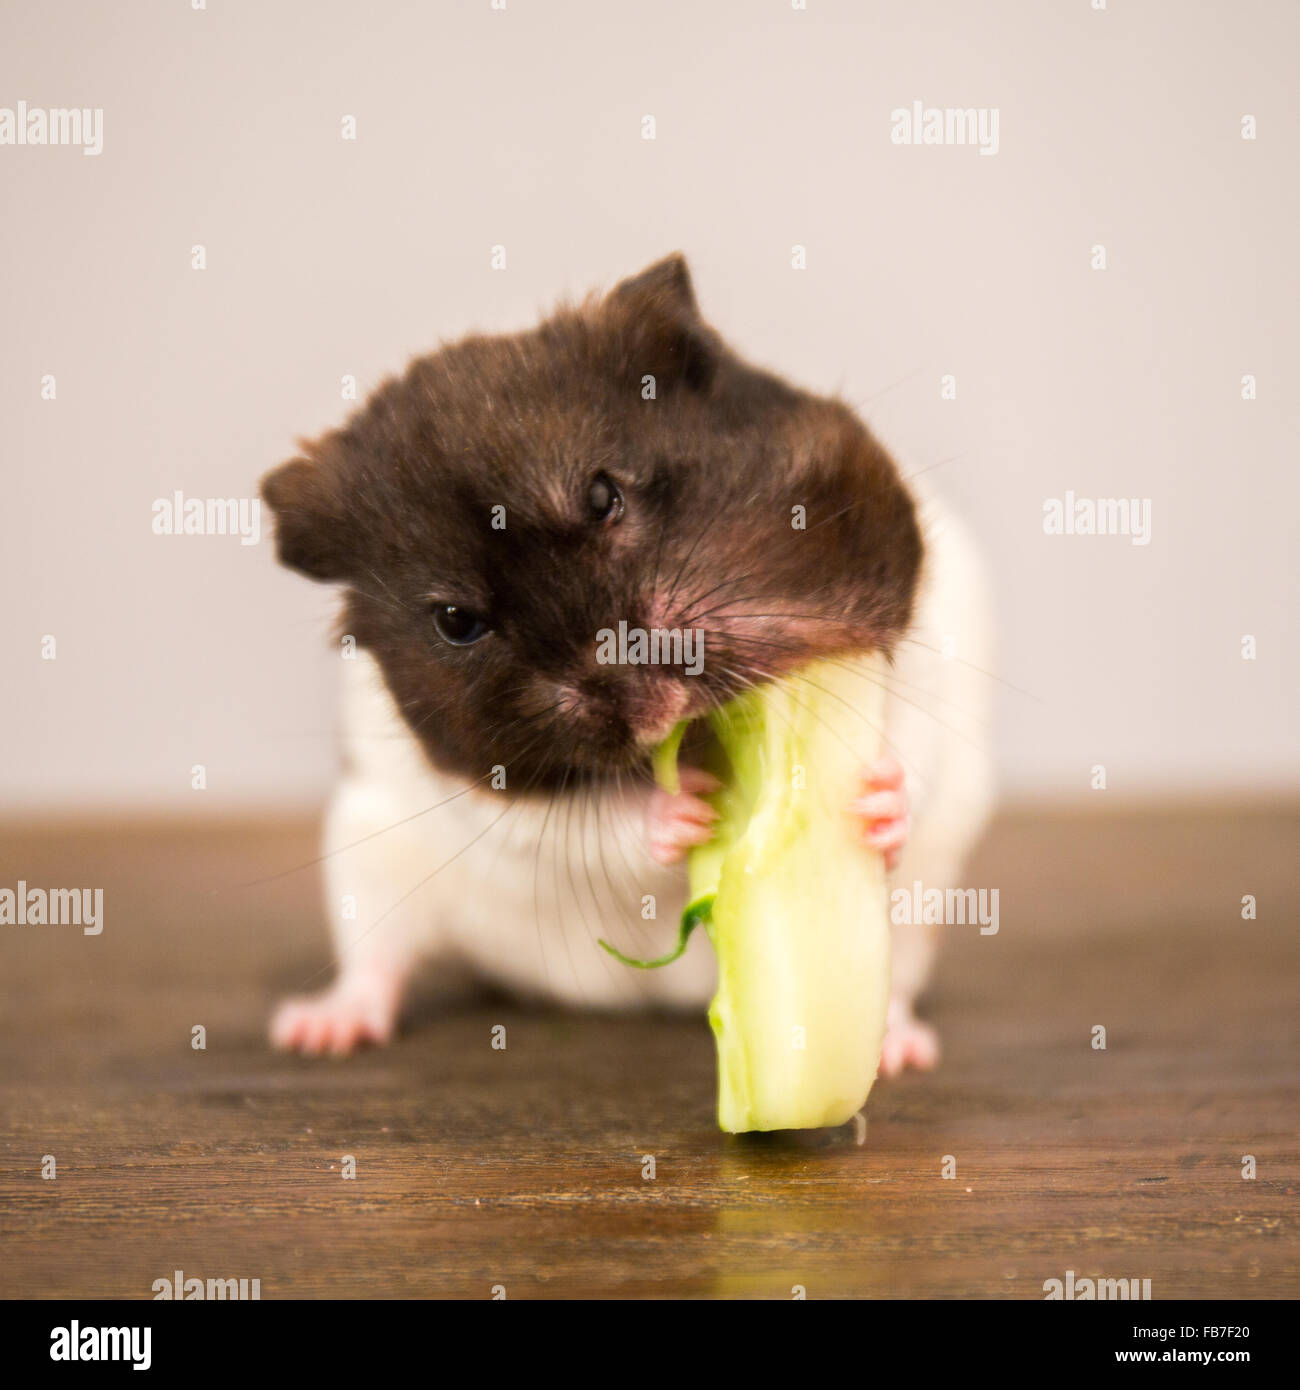 Black And White Syrian Hamster Eating A Broccoli Stem